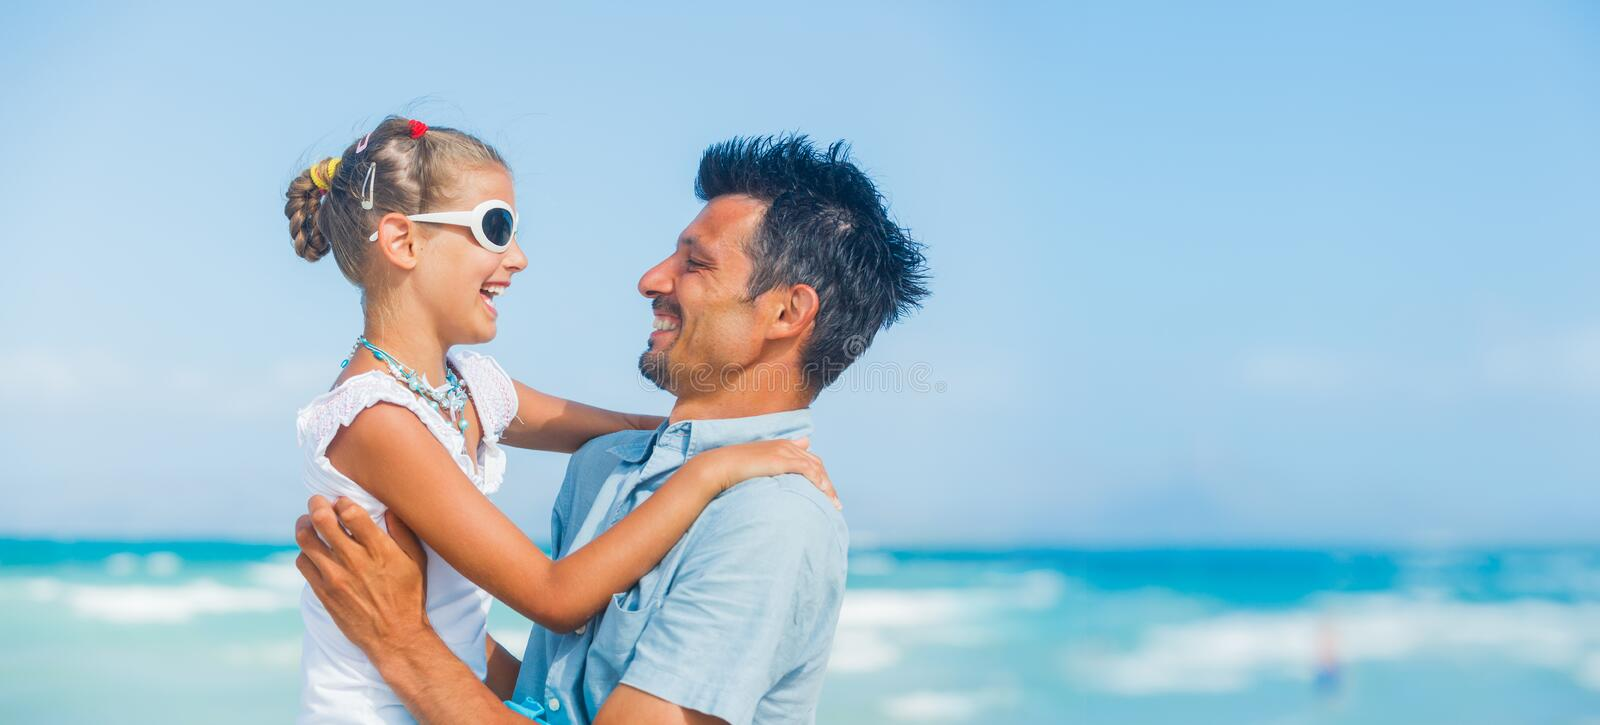 Download Father And Daughter Having Fun On Beach Stock Image - Image: 24903879